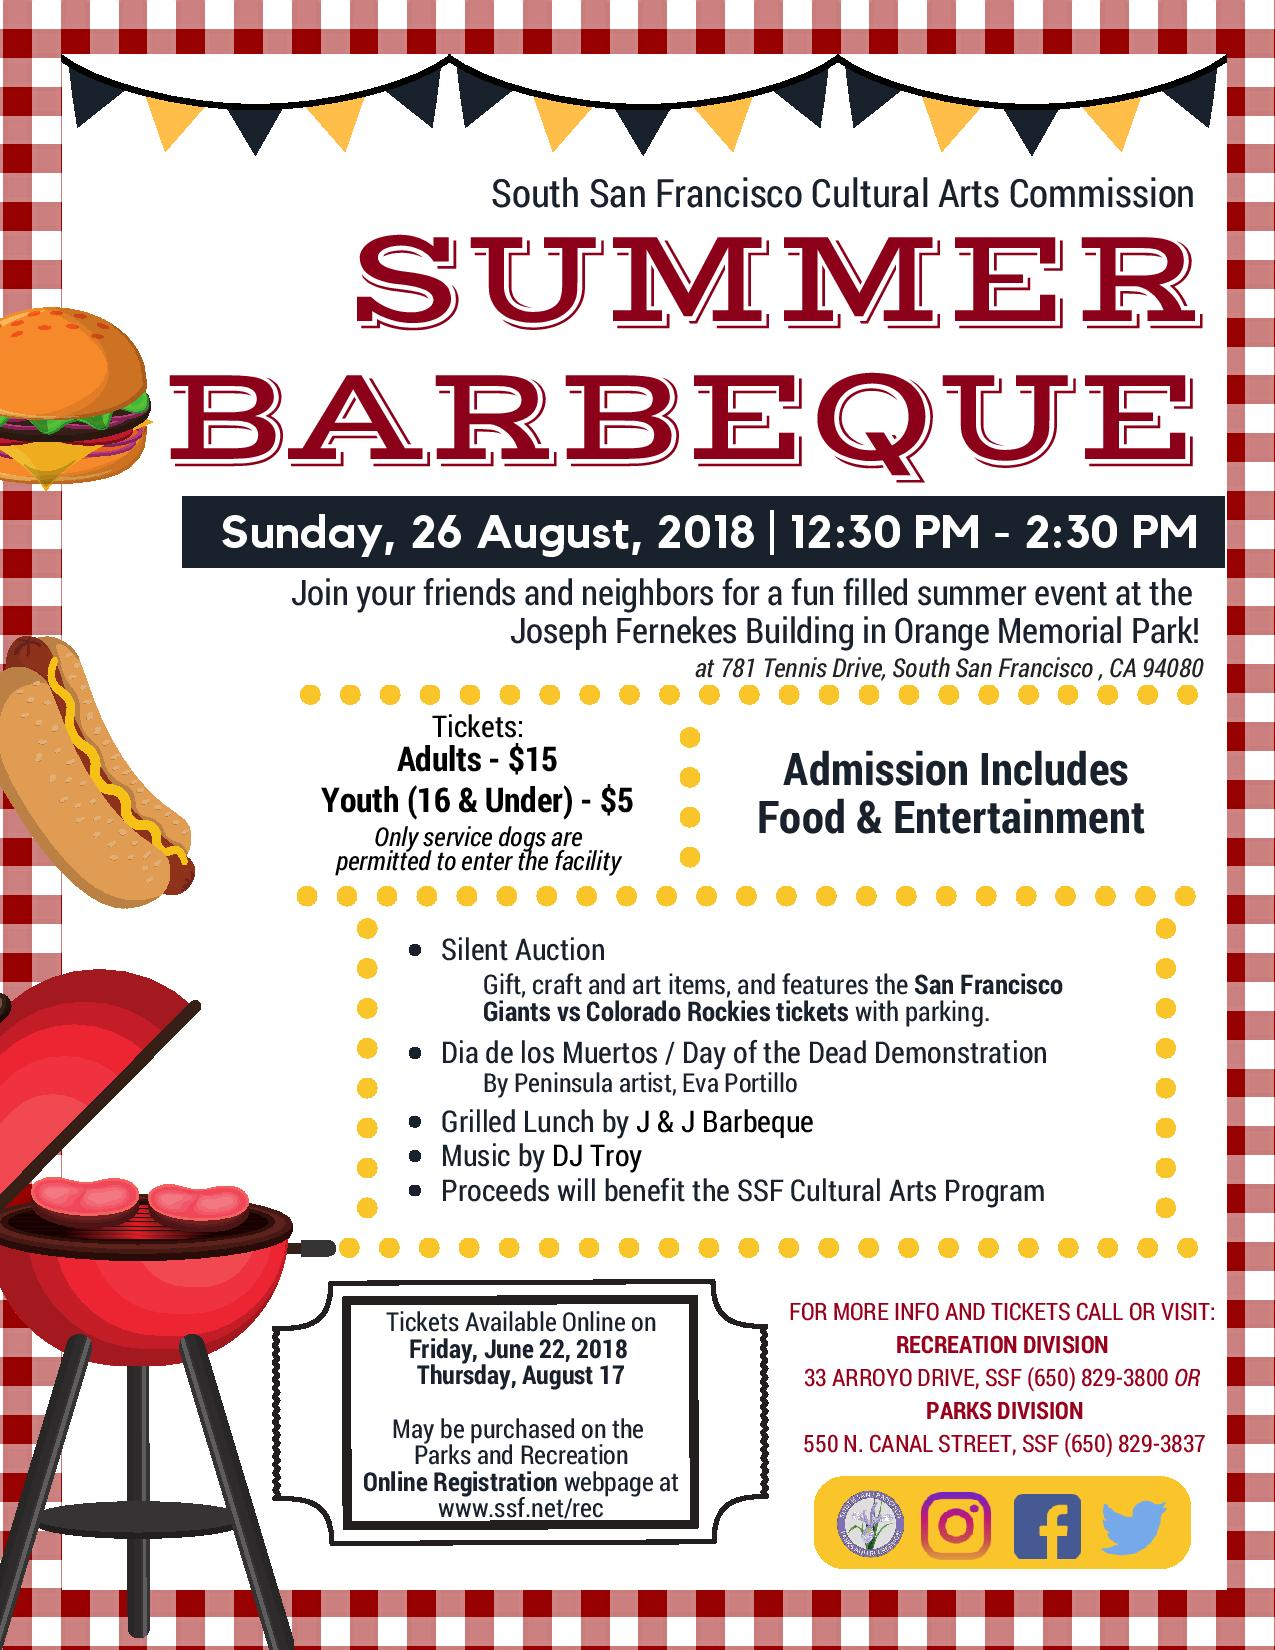 South San Francisco Cultural Arts Announce Summer BBQ Set for Sunday August 26th